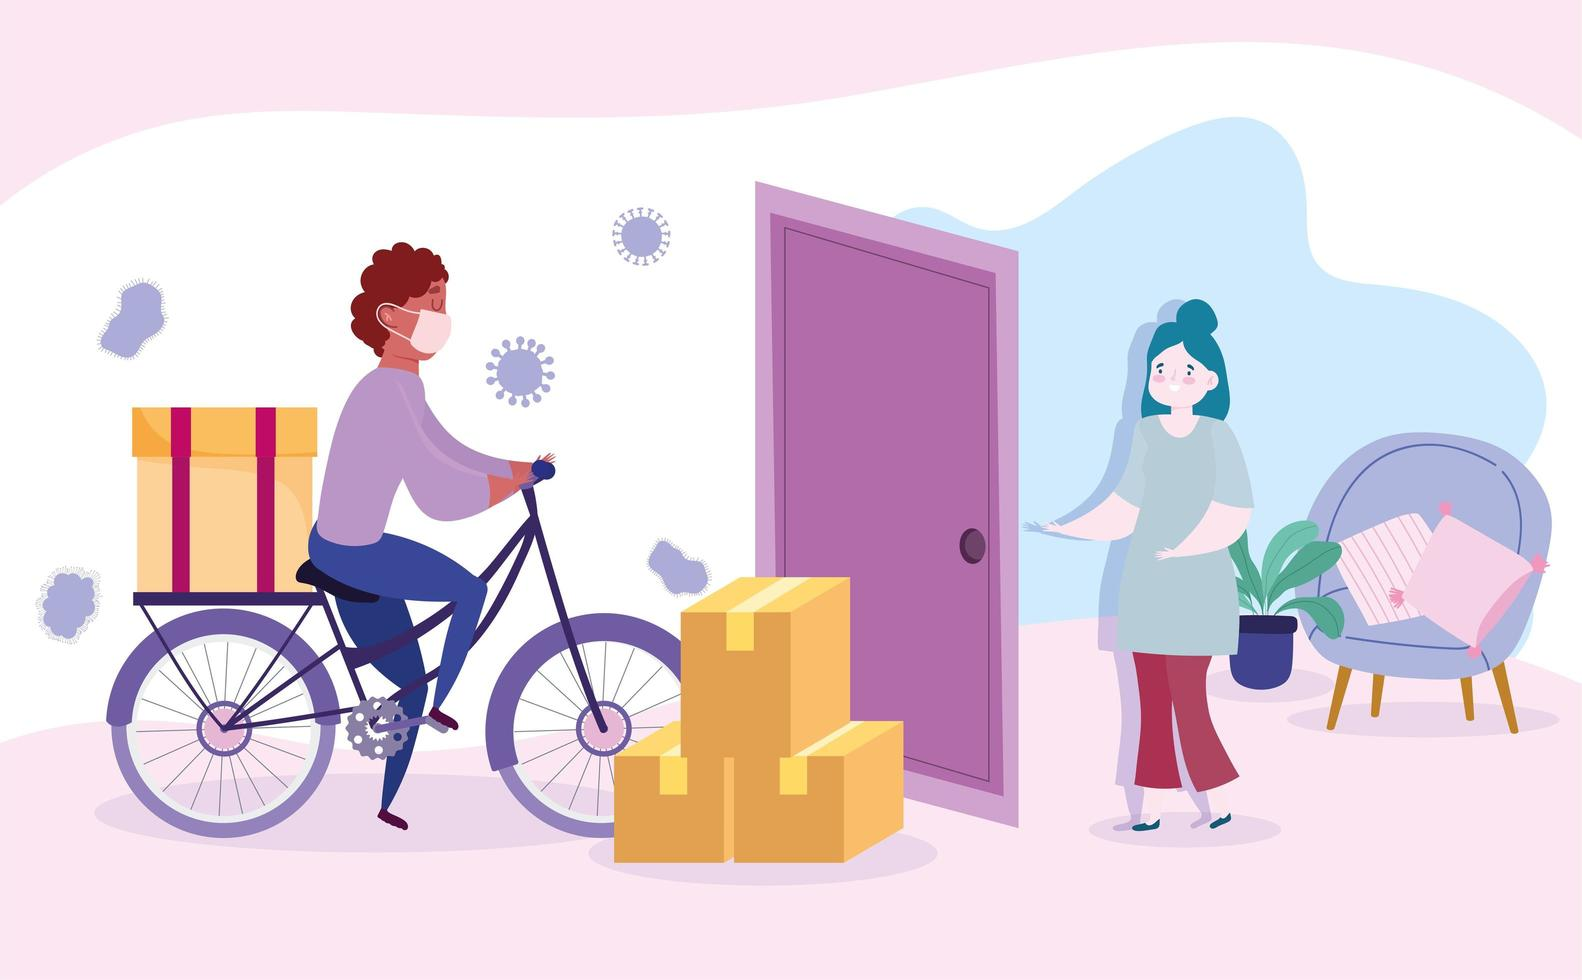 Bike courier man safely delivering packages to a woman in her house vector